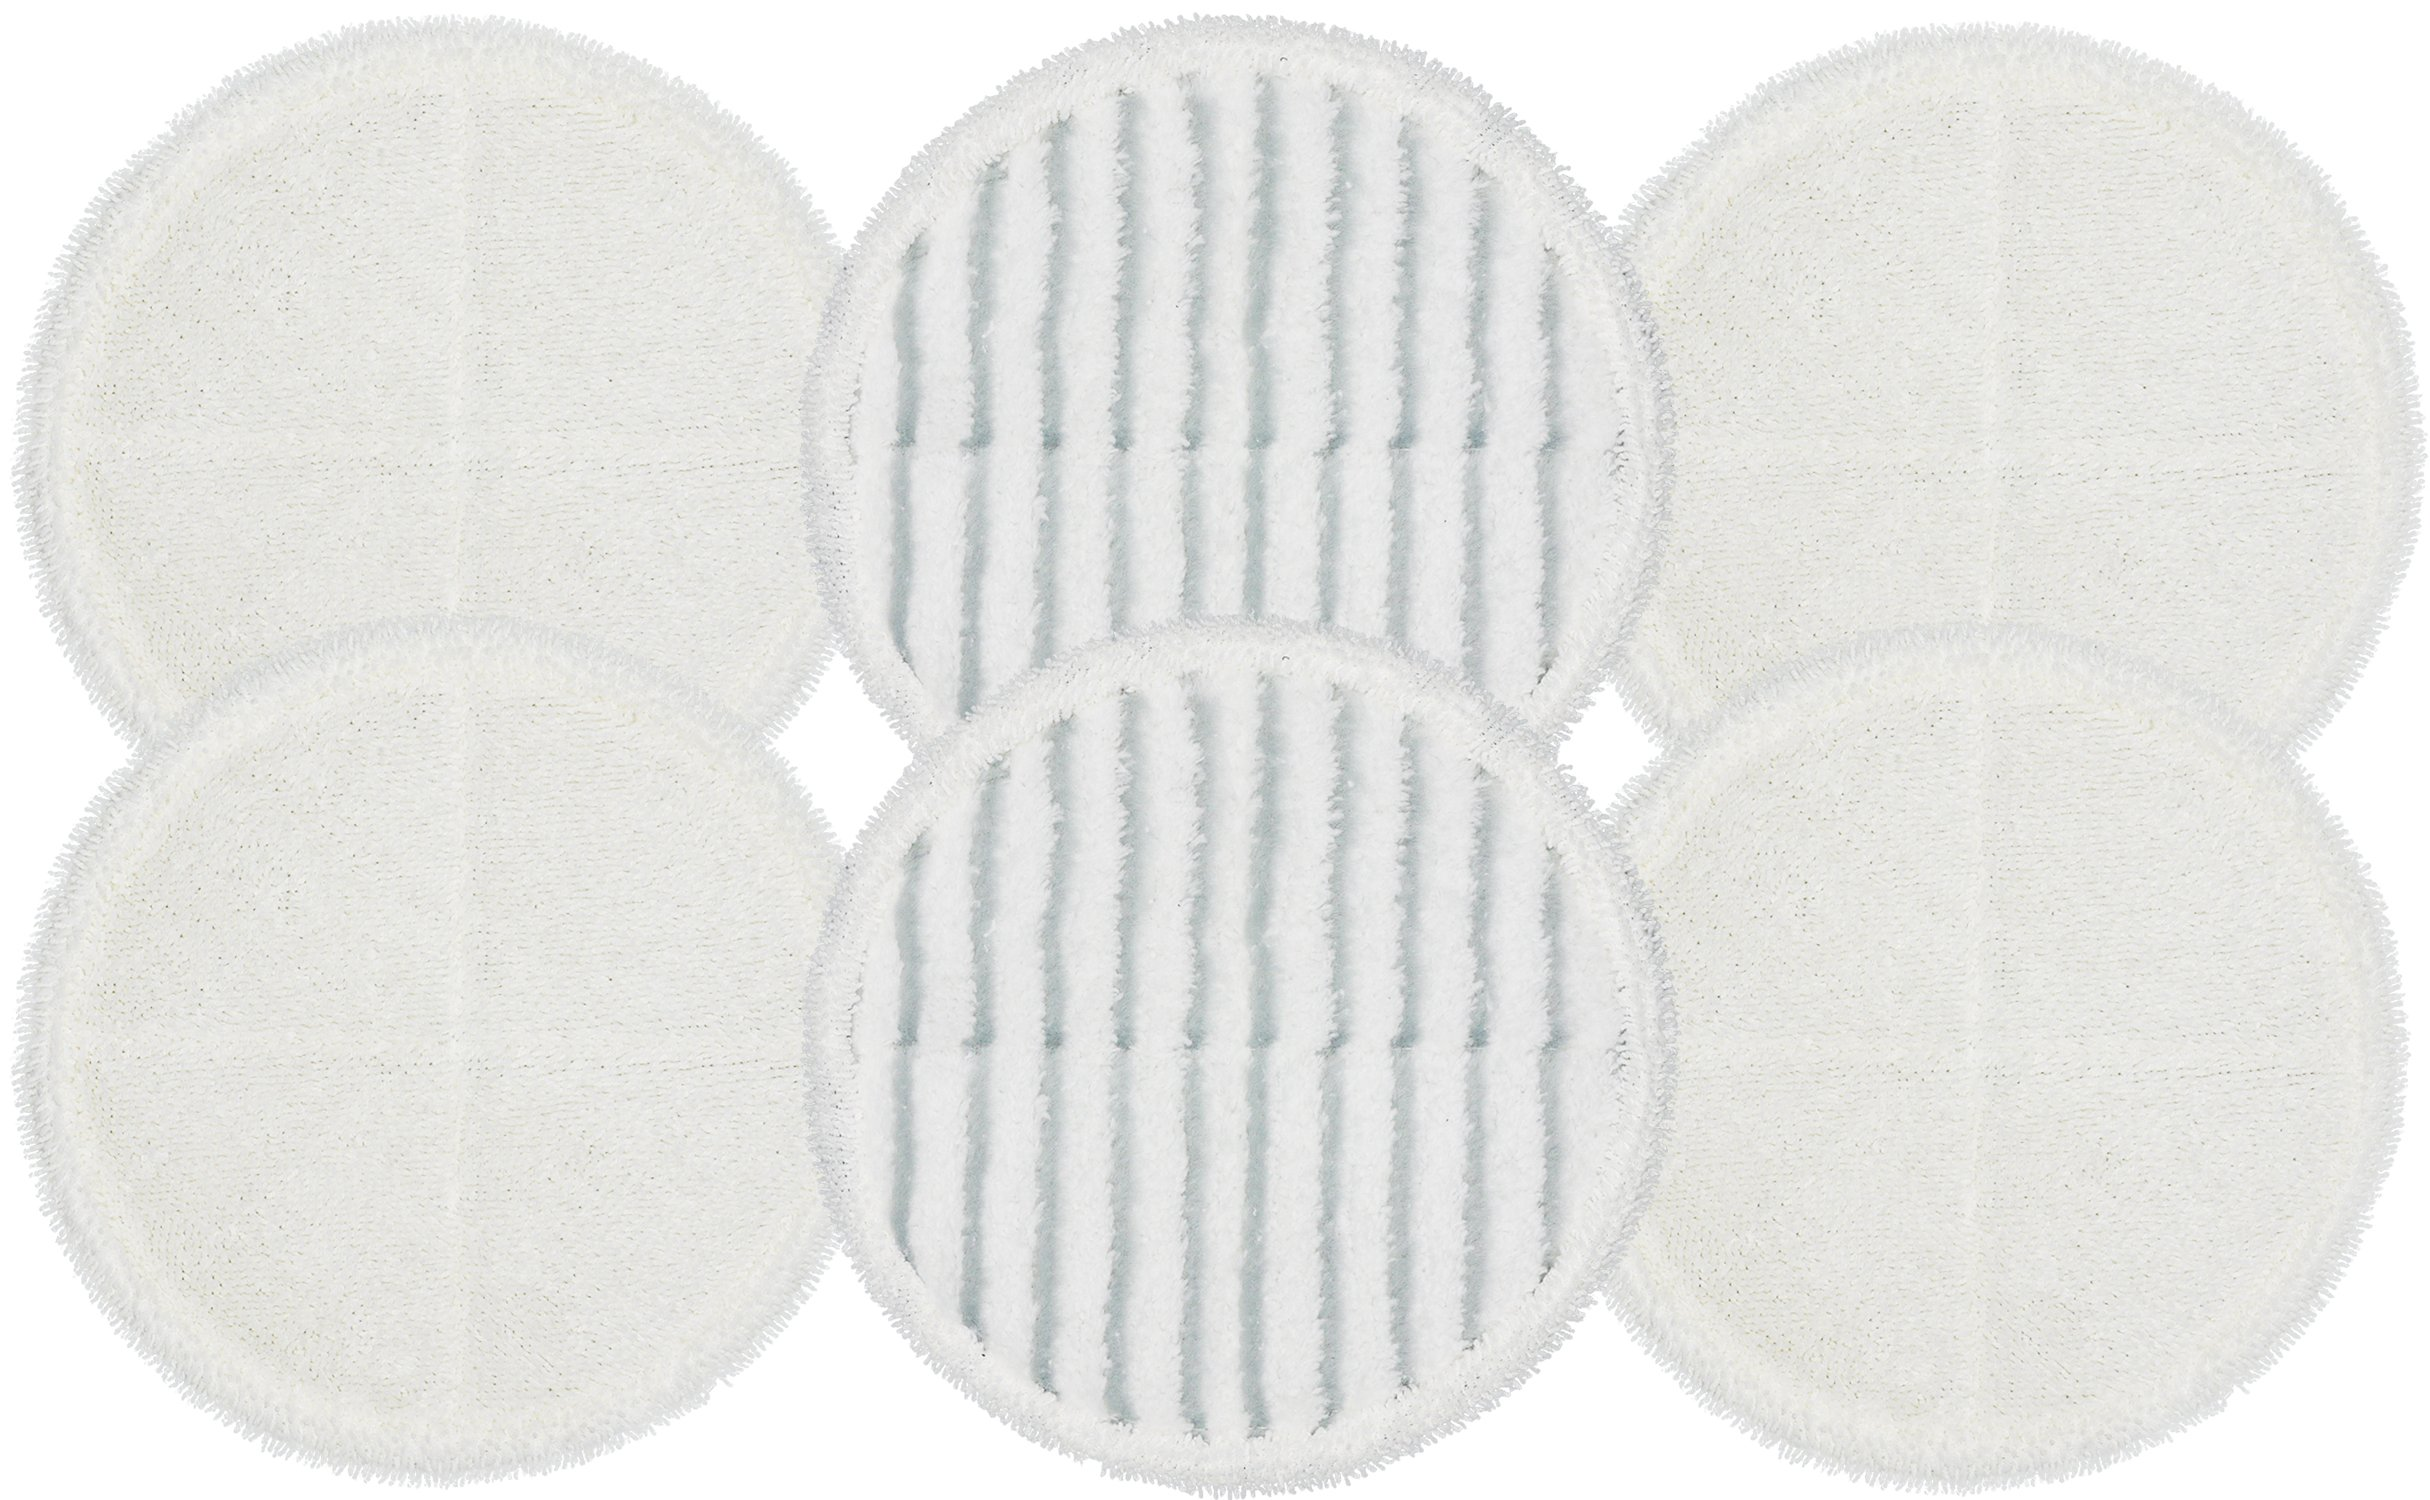 Bissell SpinWave Compatible Replacement Mop pads for Bissel Bissell Spinwave Hard Floor Cleaner Powered Rotating Mop 2124, 2039 series, 2307, 2315A, 6-pack (4 Soft pads + 2 Scrubby pads)